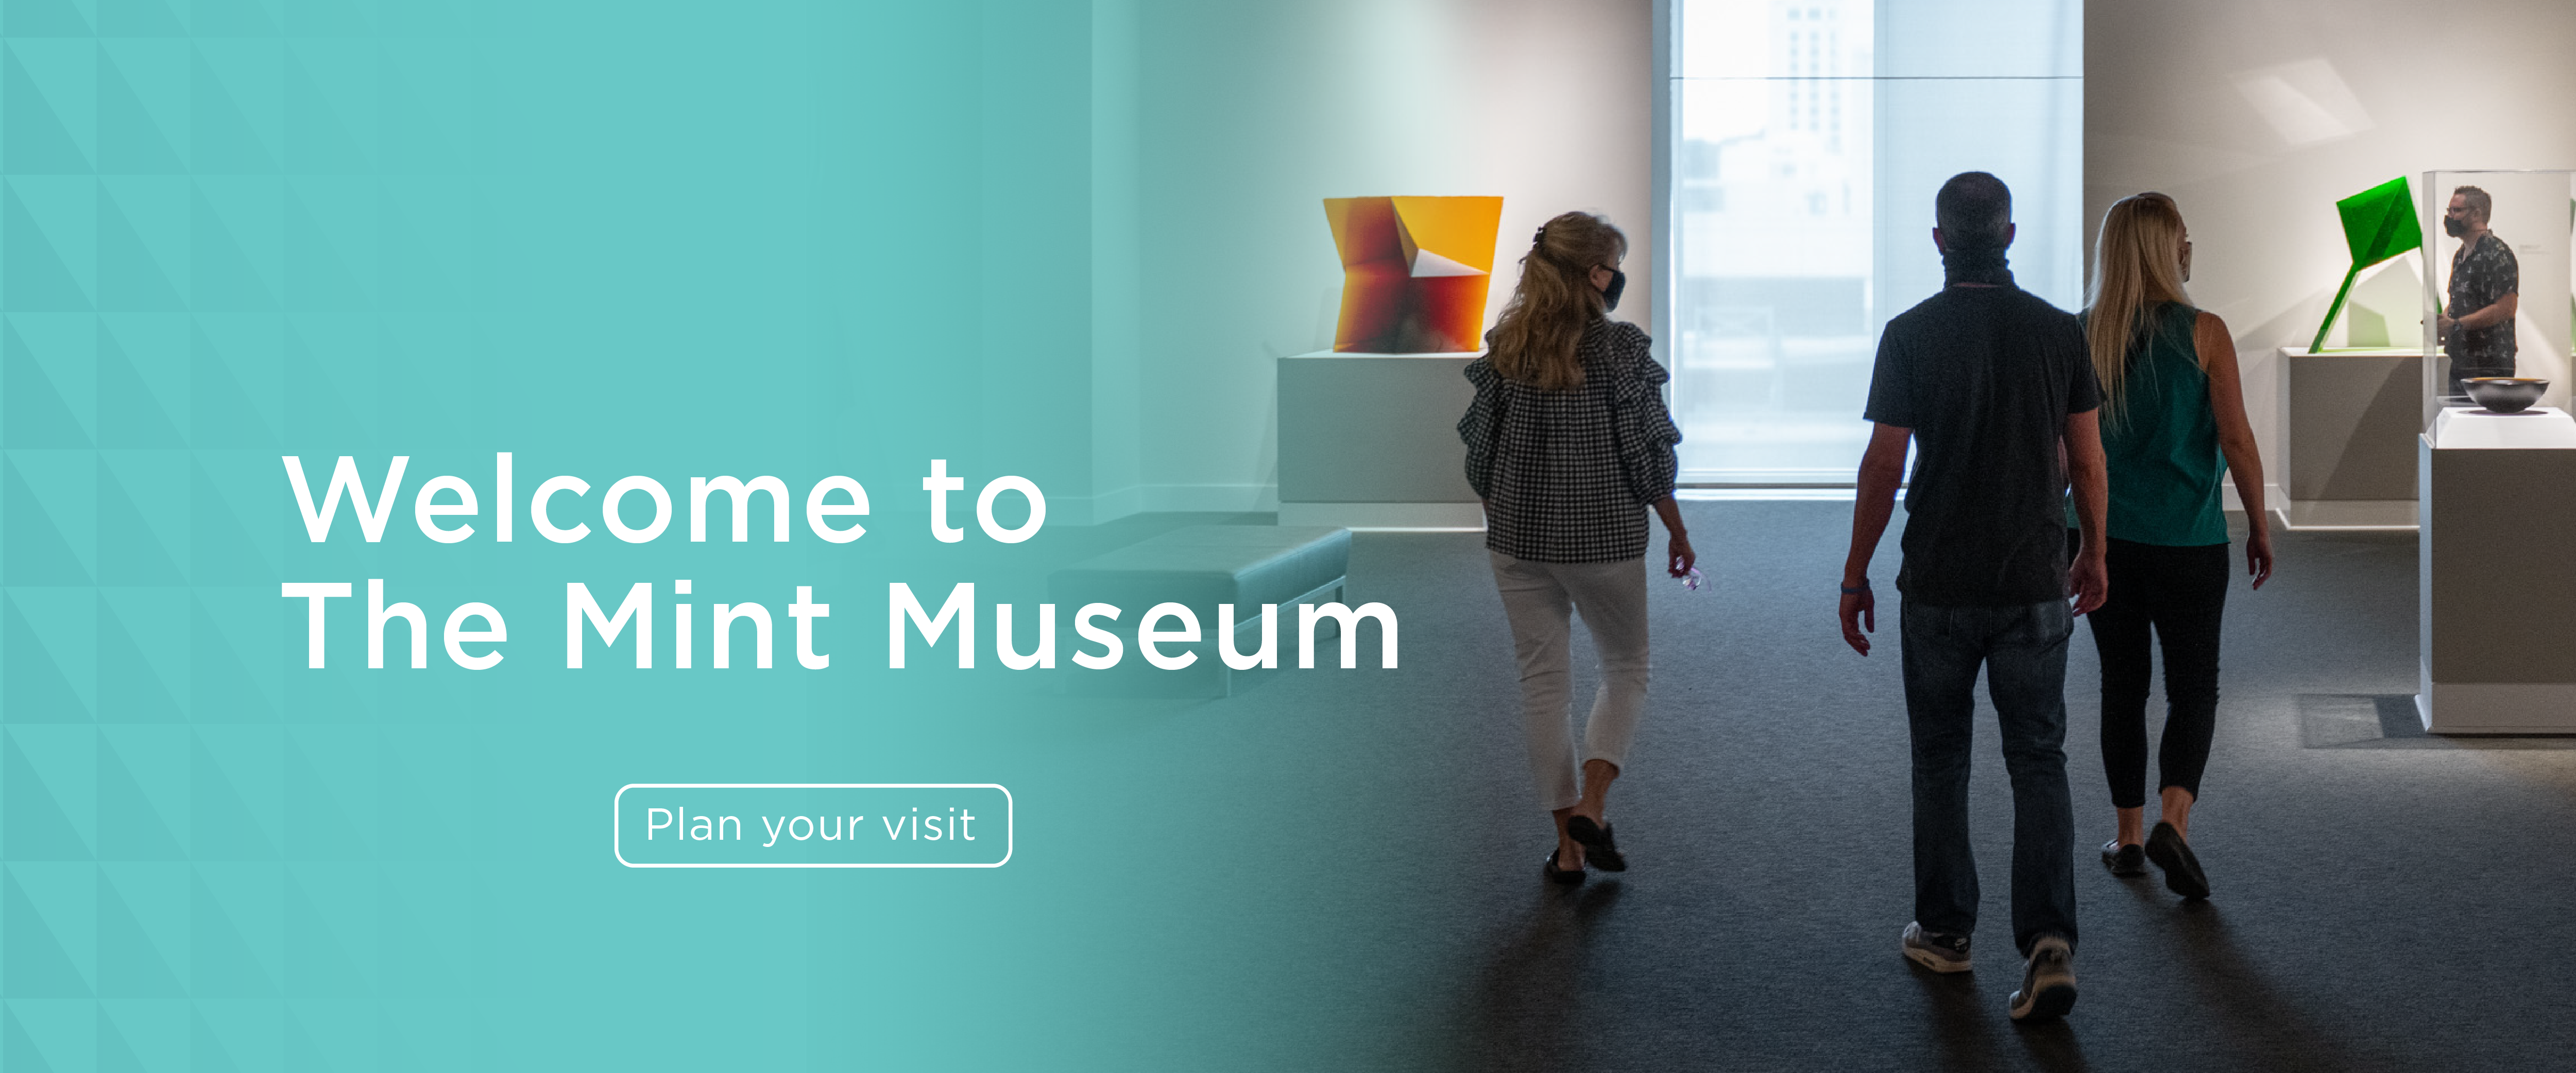 Welcome to The Mint Museum